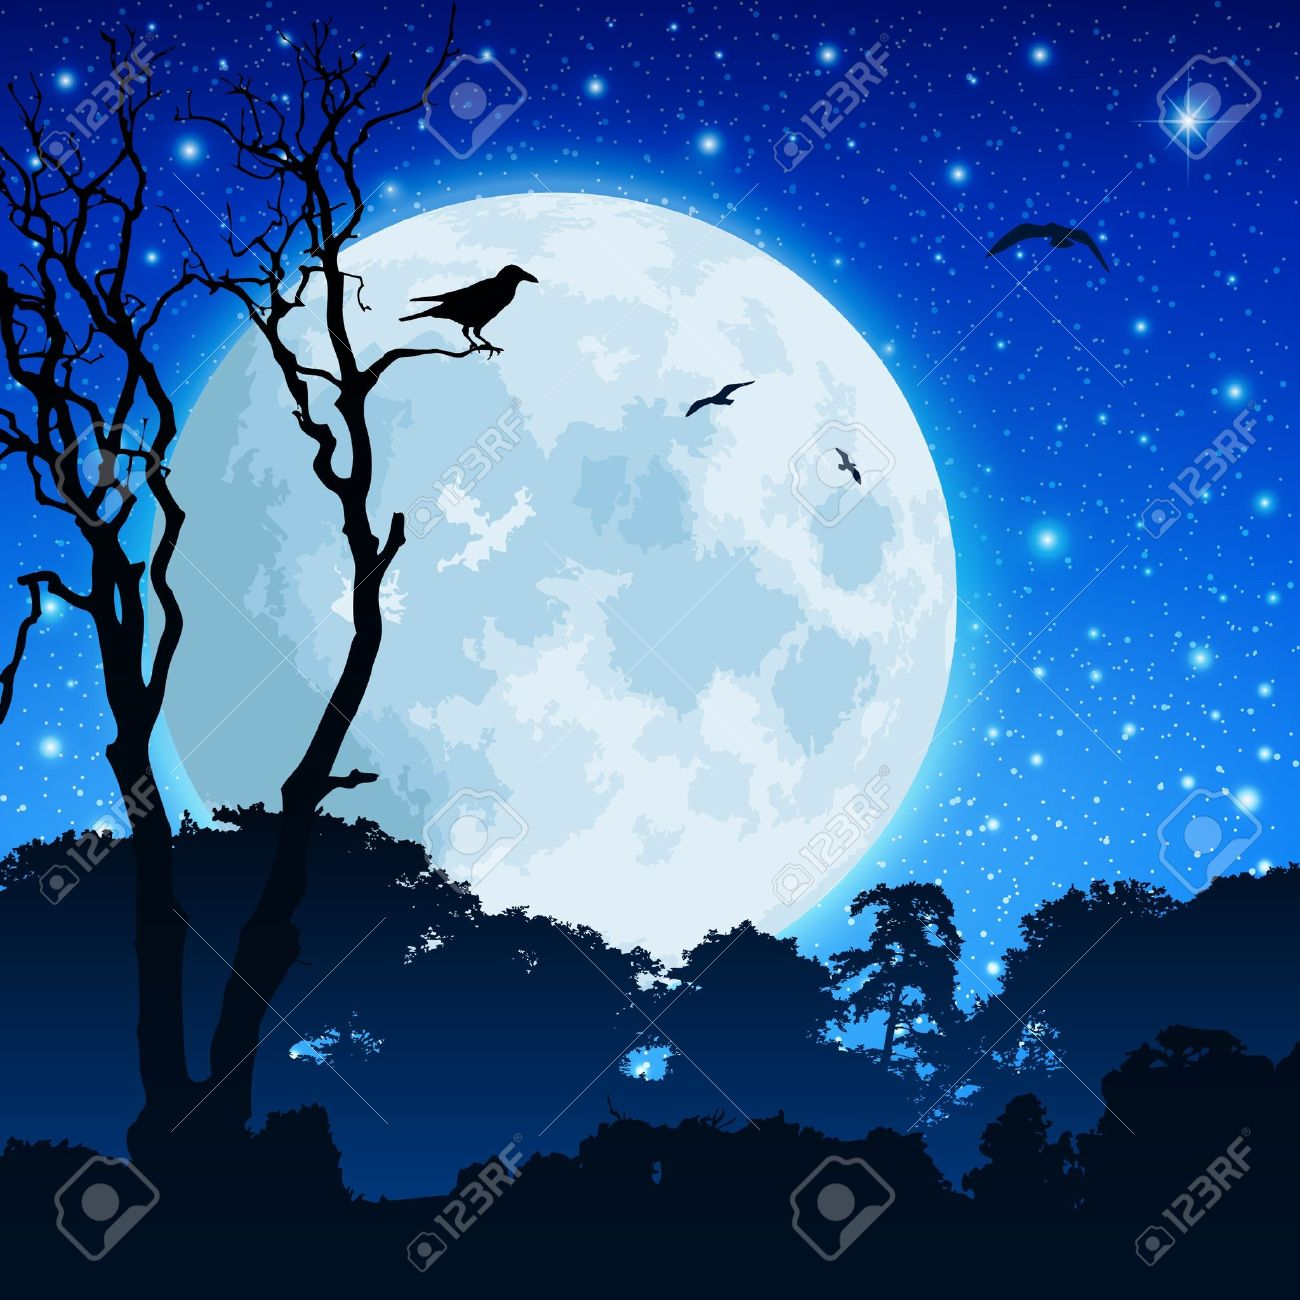 A Forest Landscape with Moon and Night Sky Stock Vector - 8984562